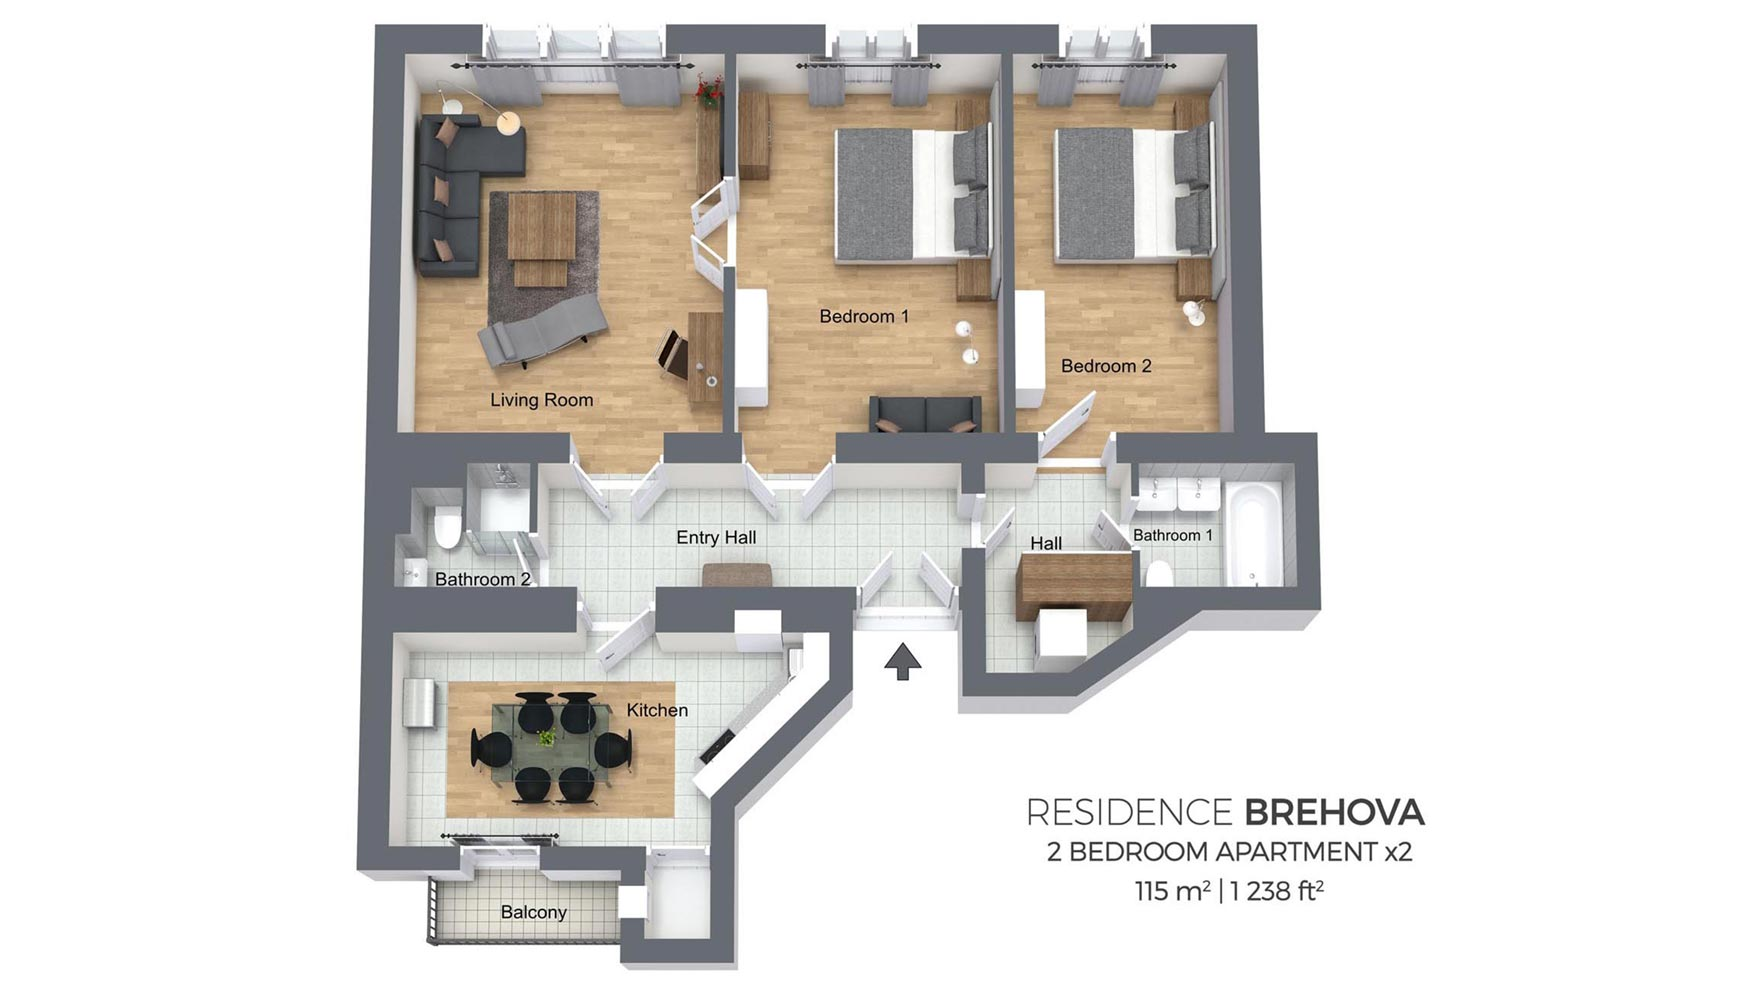 two bedroom apartment residence brehova